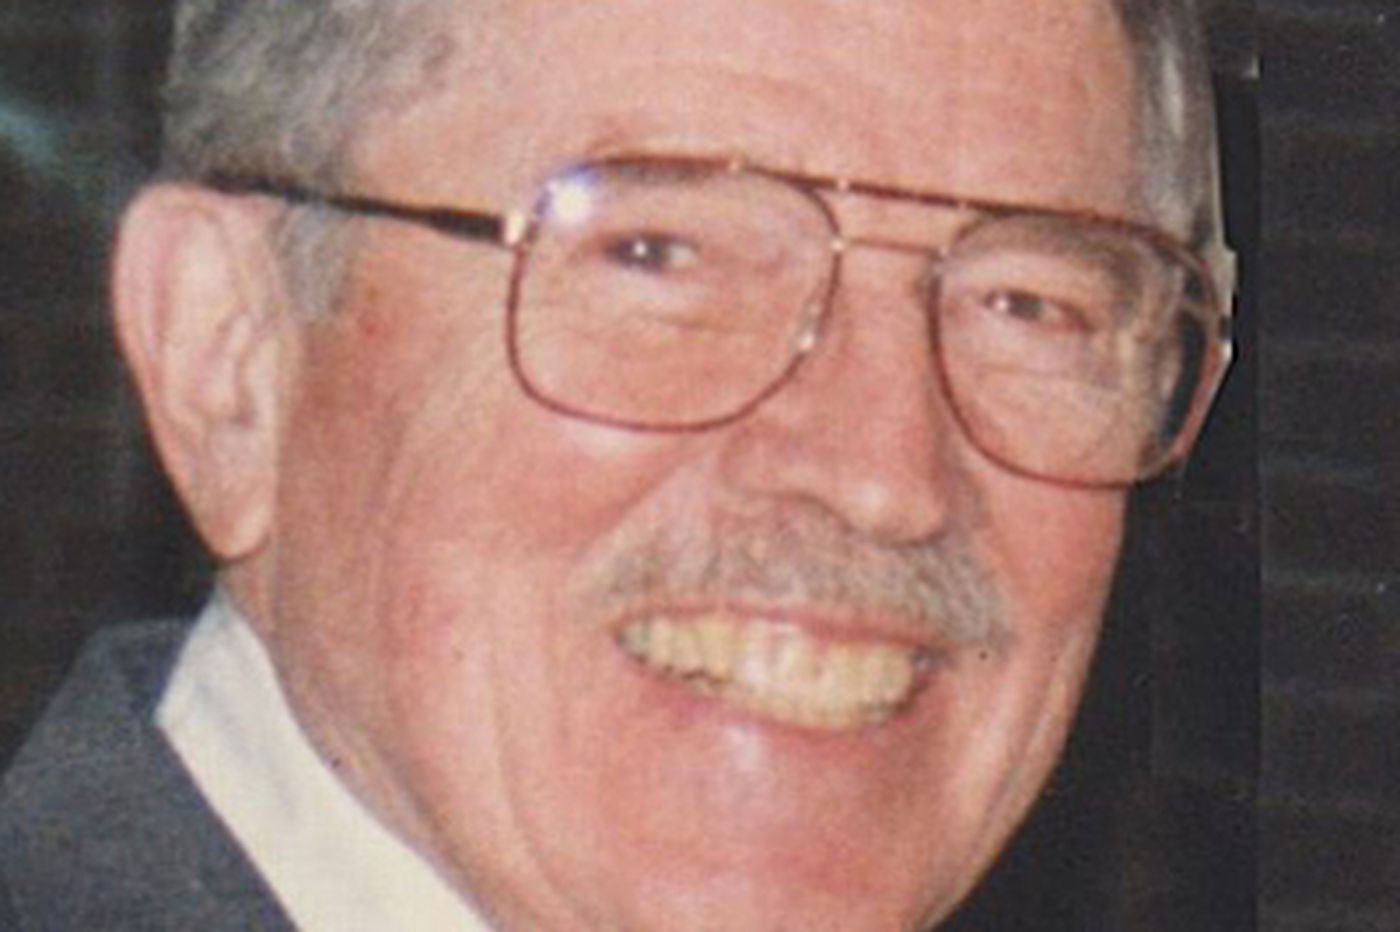 Philip B. Schaeffer, 94, former editor and assistant to Temple U presidents